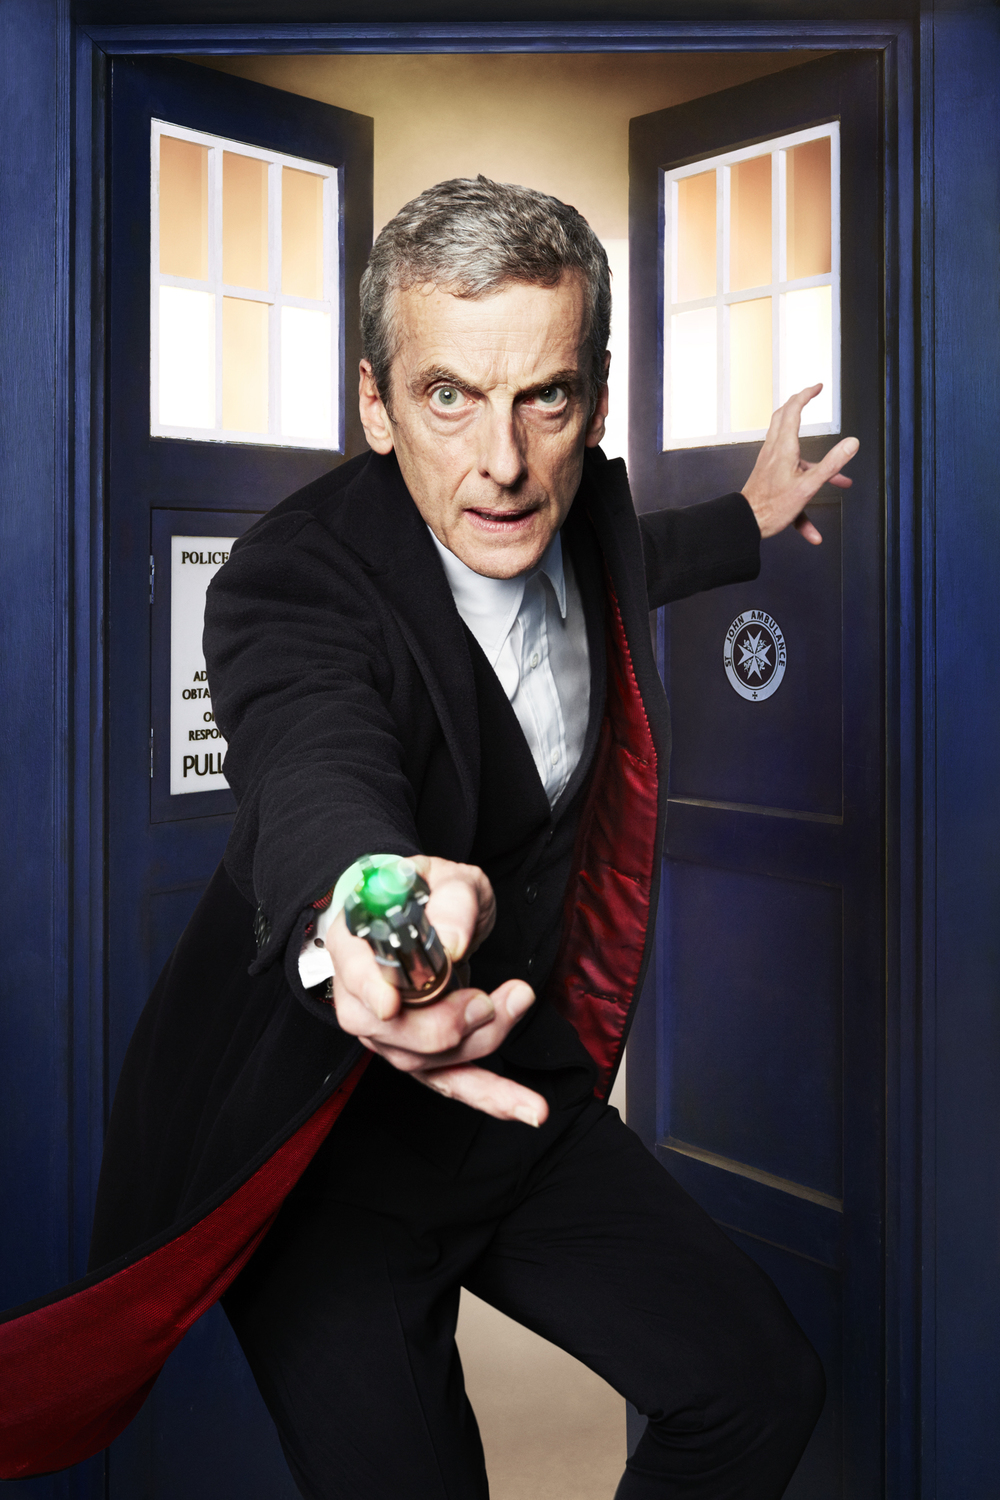 Dr. Who - Peter Capaldi - Cardiff, Wales